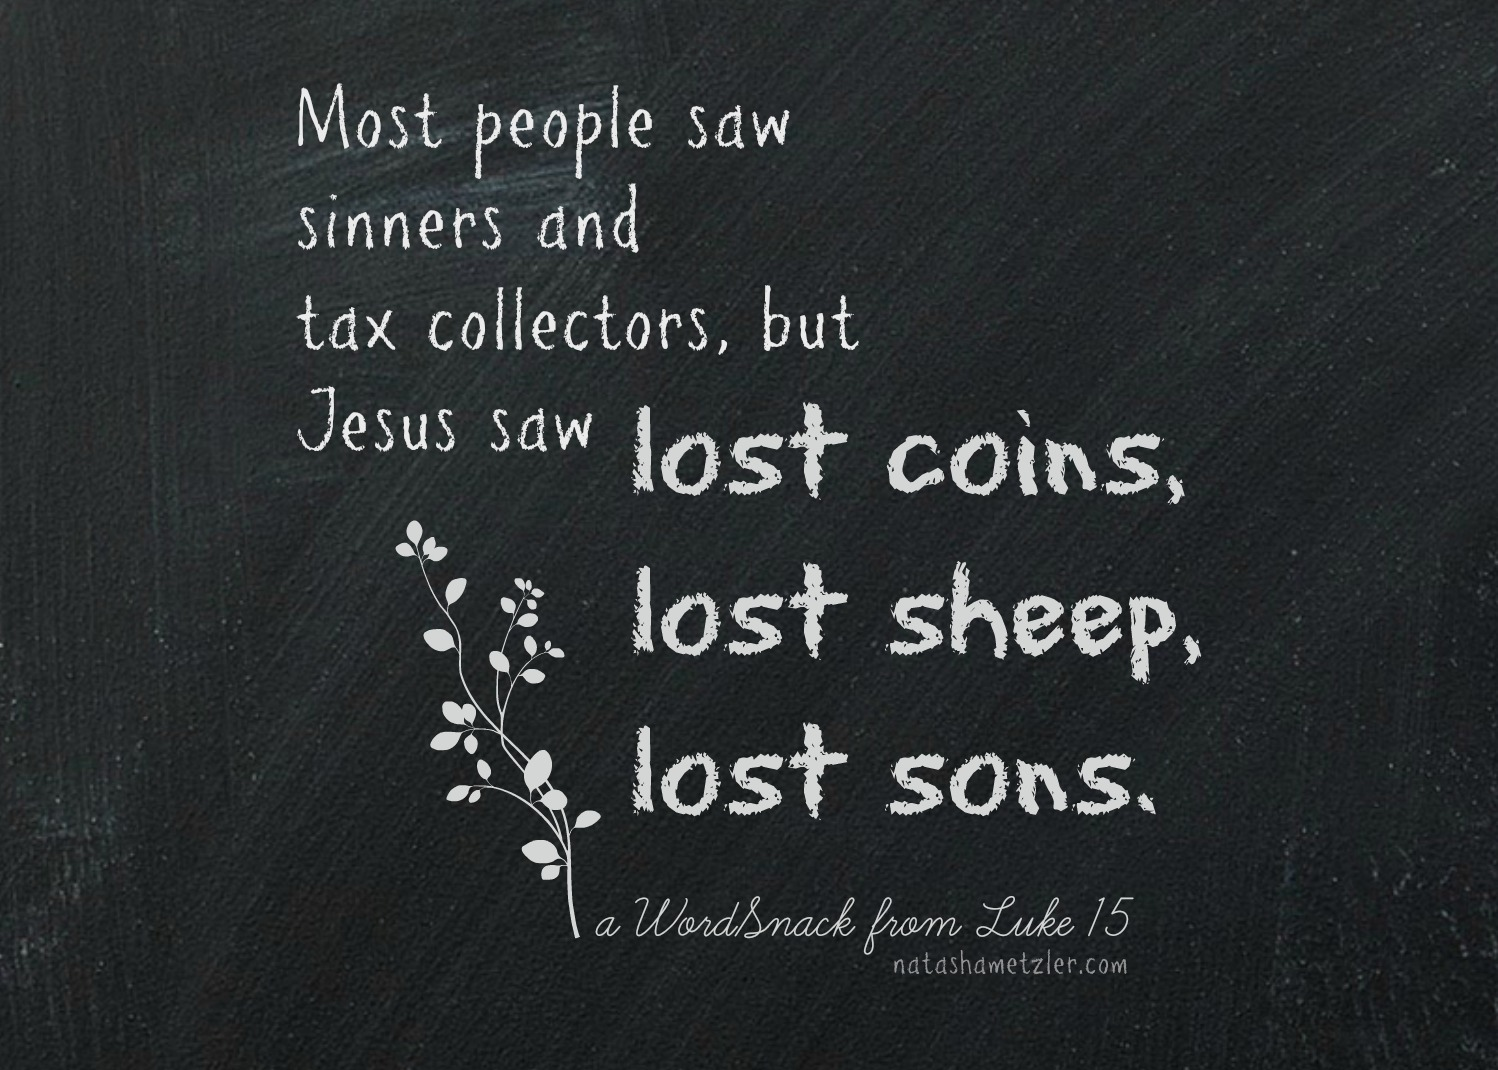 Lost Sheep (A WordSnack from Luke 15)